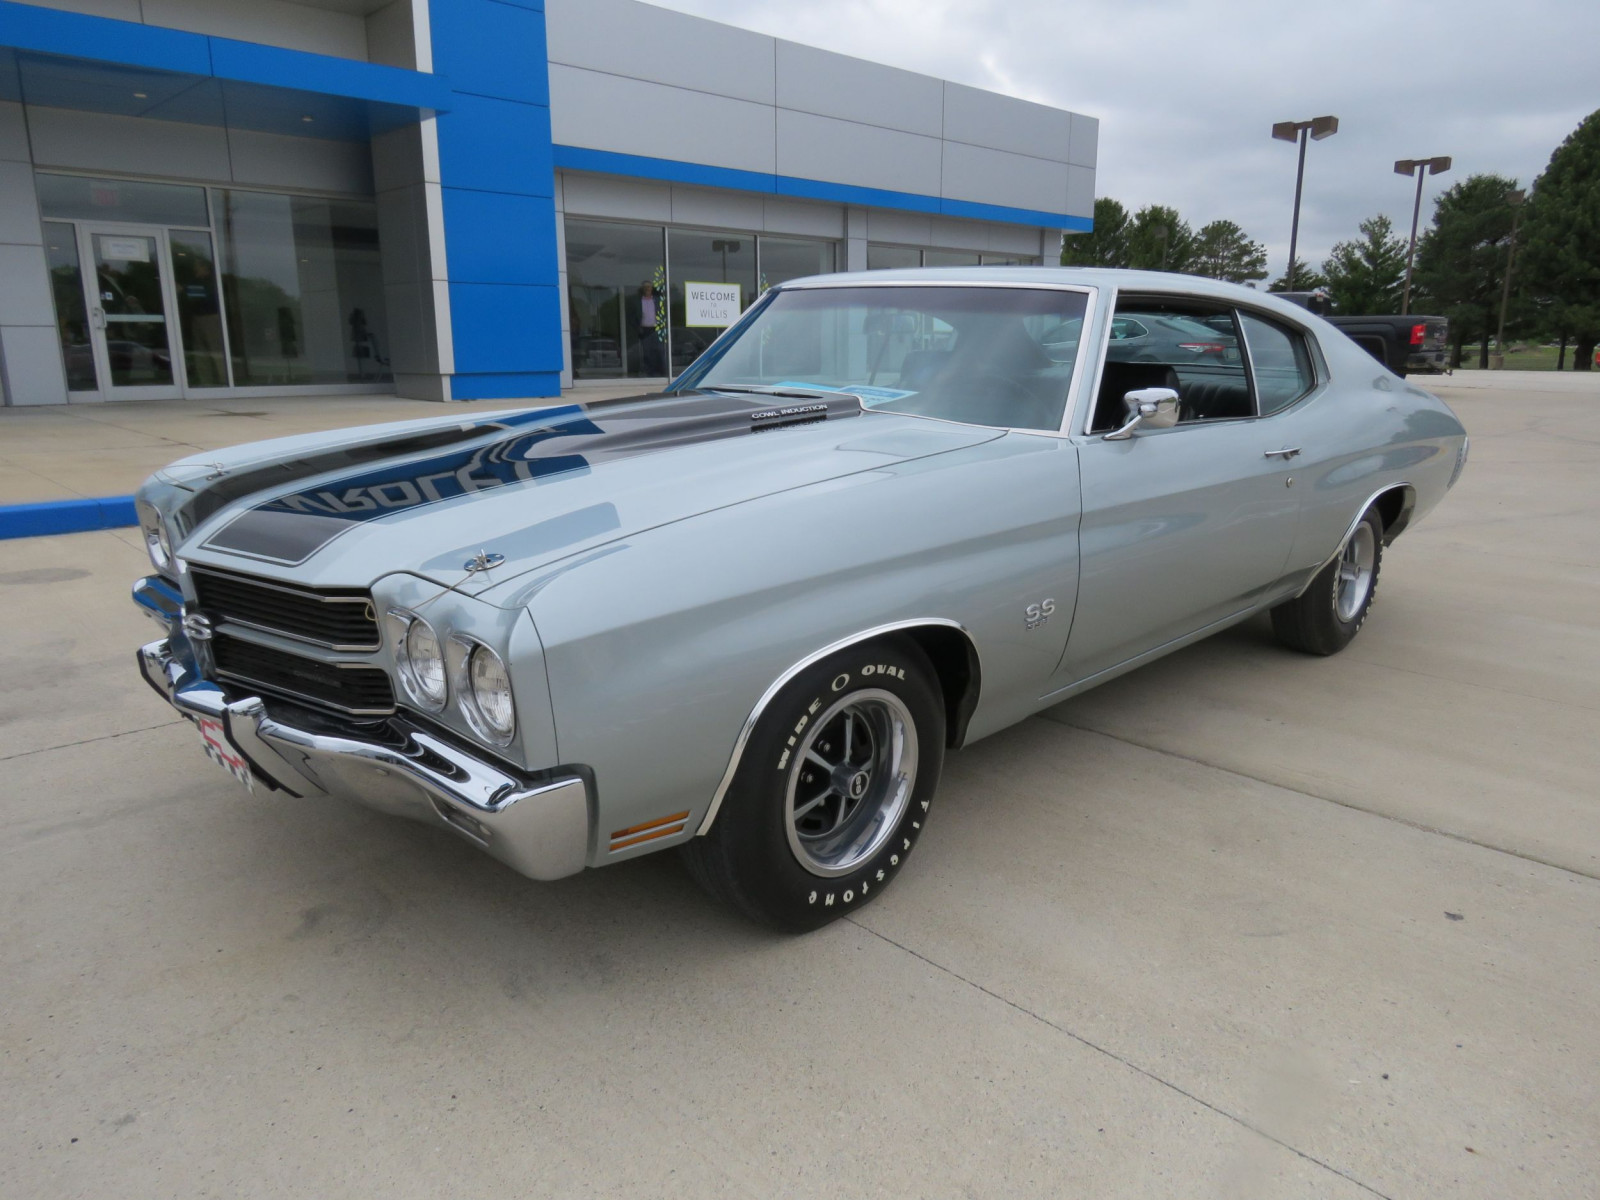 1970 Chevrolet Chevelle SS Coupe - Image 2